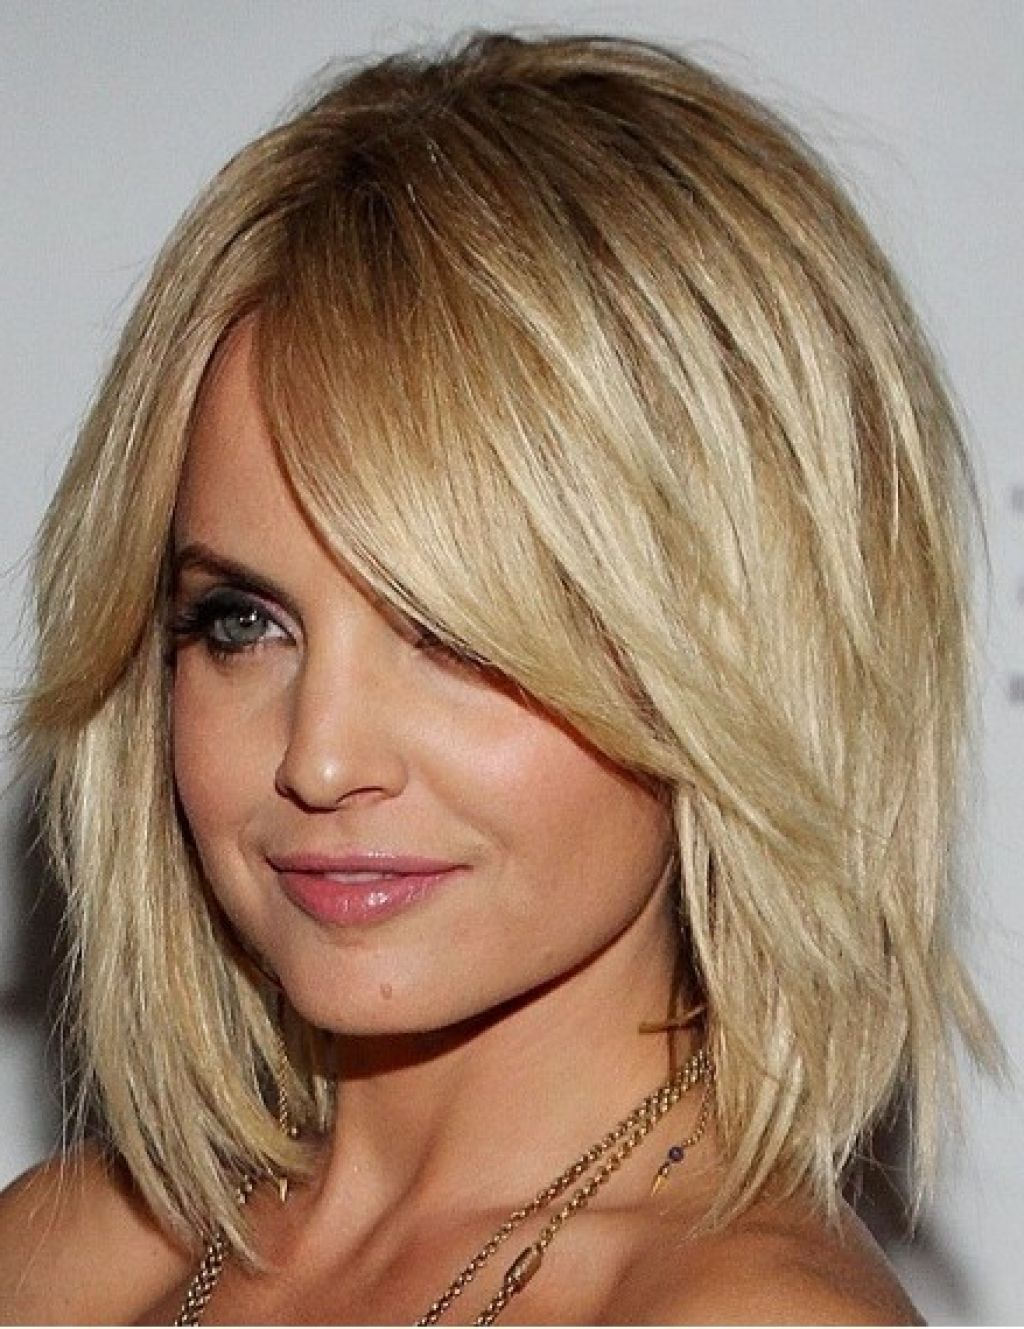 long choppy hairstyle pictures - wow - image results